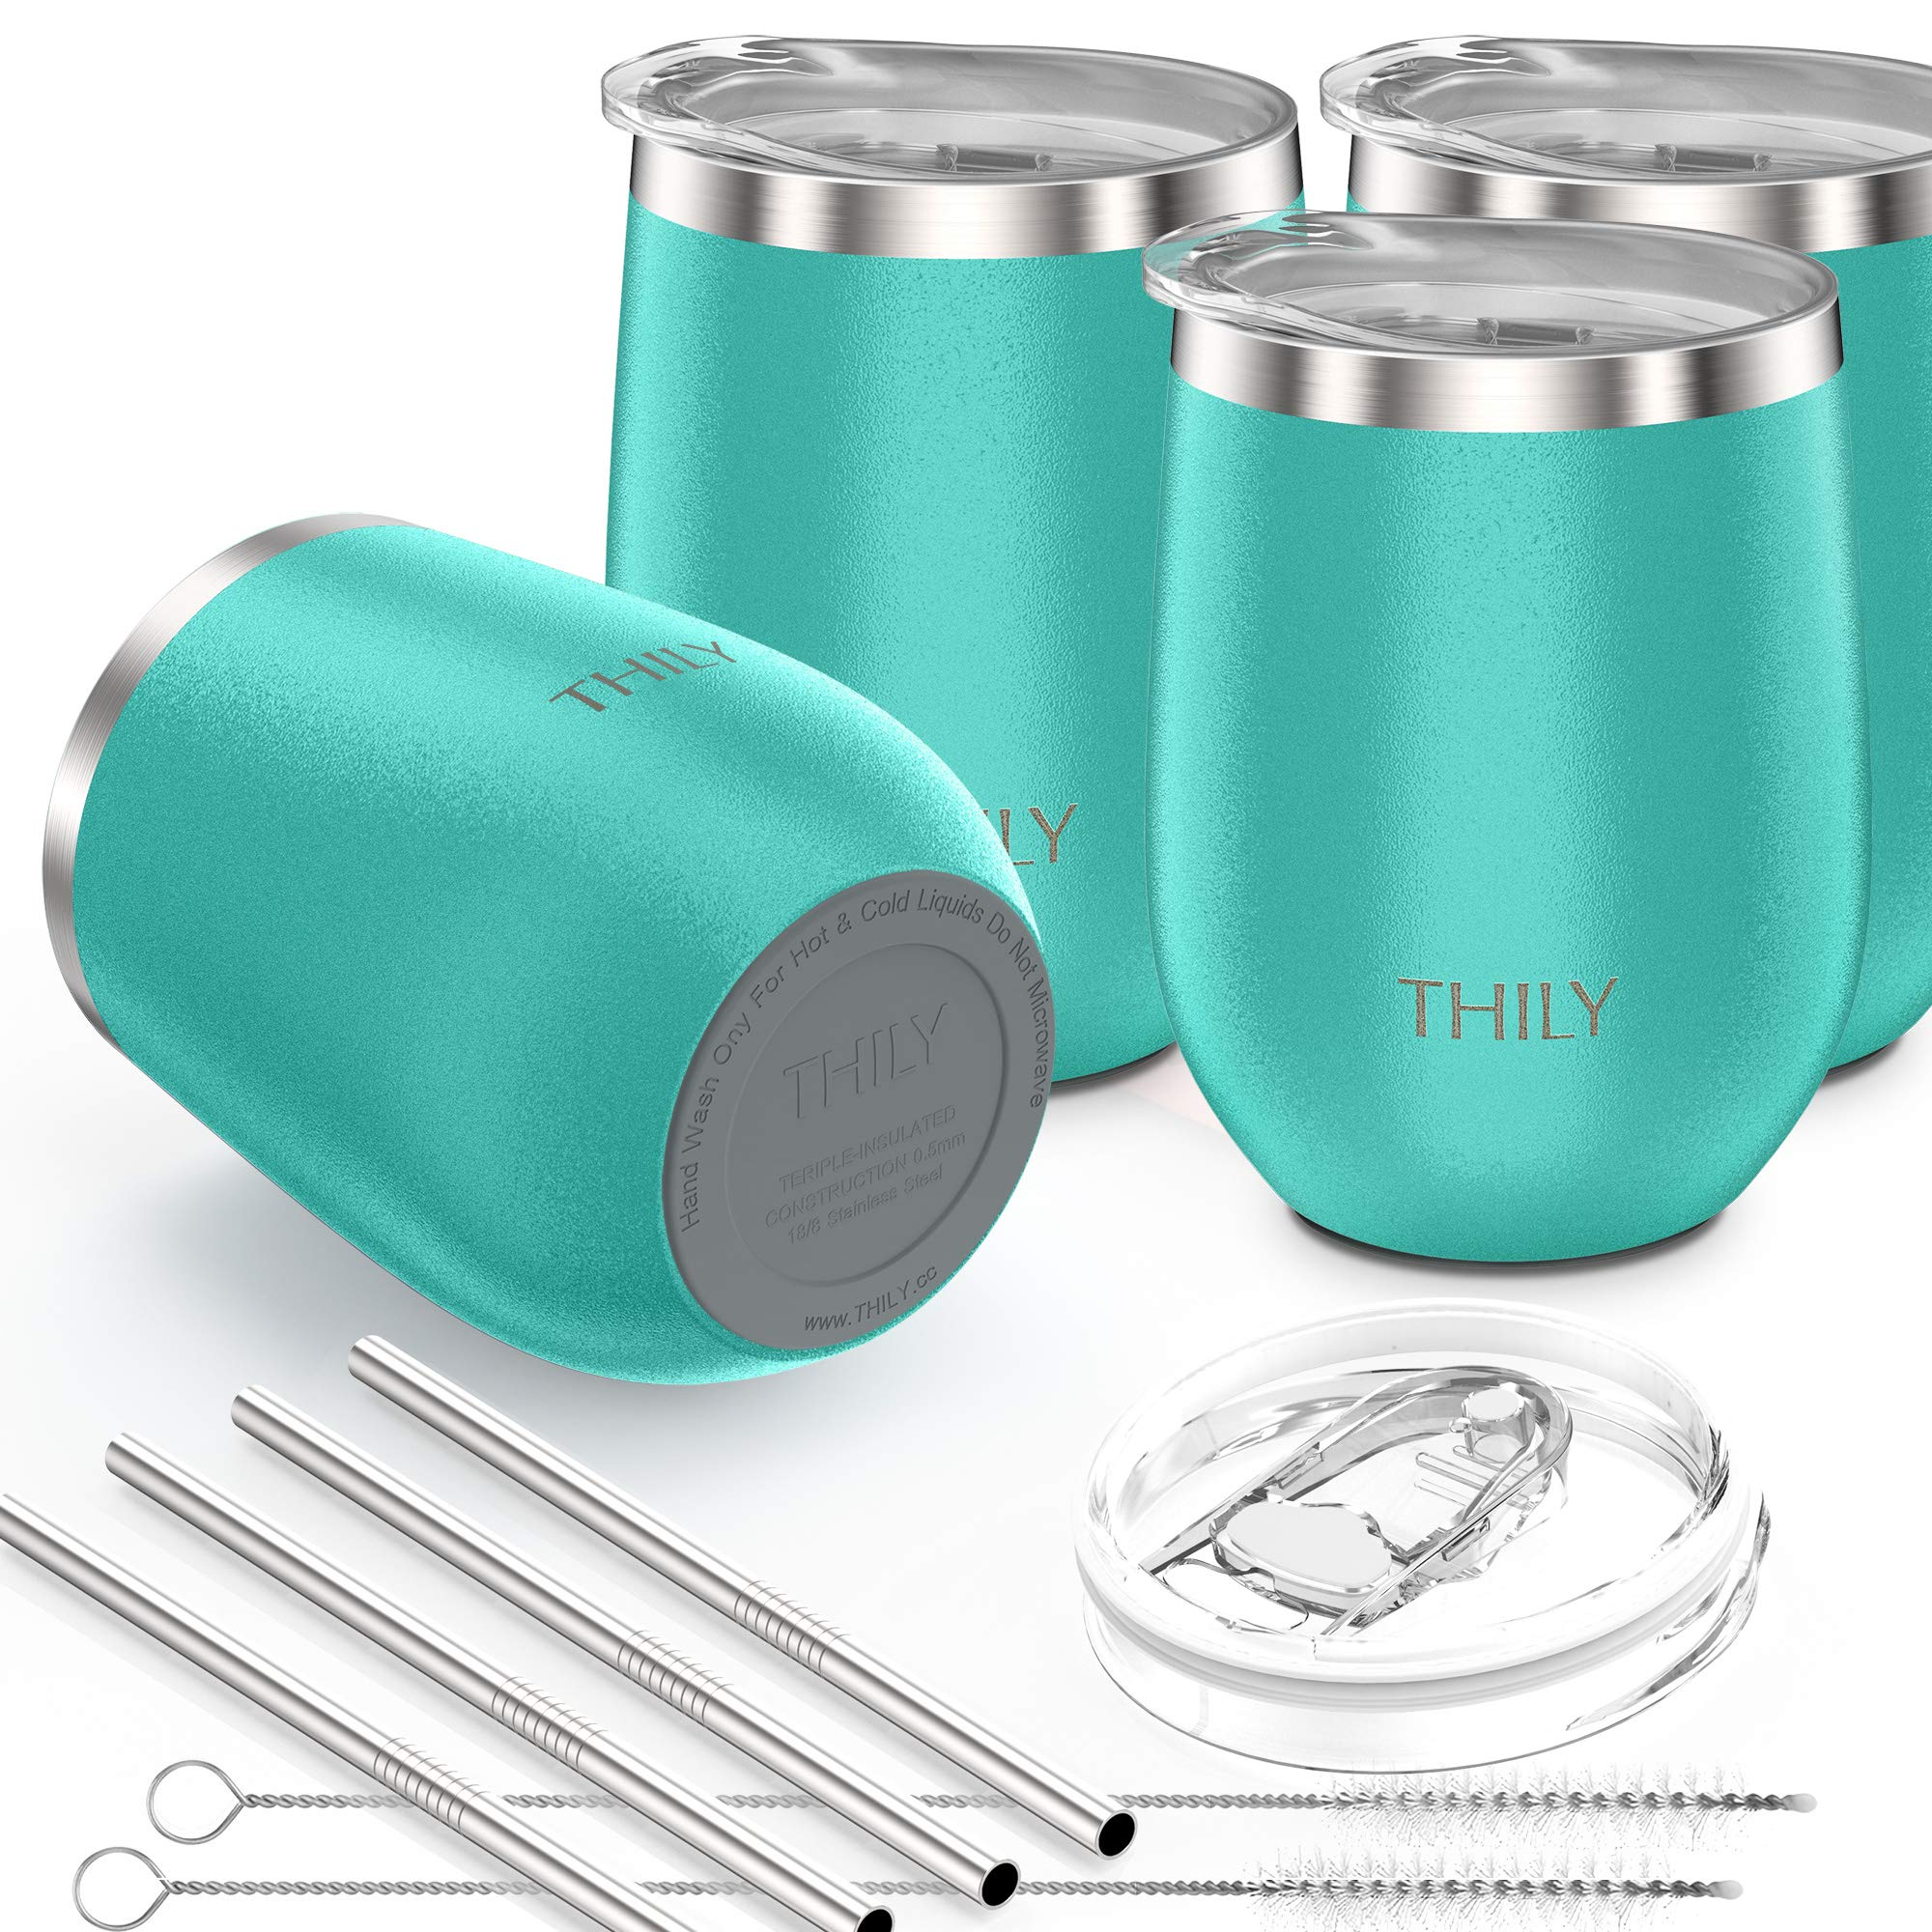 Stainless Steel Stemless Wine Glasses - THILY Triple Vacuum Insulated Cute Travel Tumbler Cup with Spill-Proof Lid, Reusable Straw, Keep Cold & Hot for Wine, Coffee, Birthday Xmas Gift, 4 Pack, Teal by THILY (Image #5)